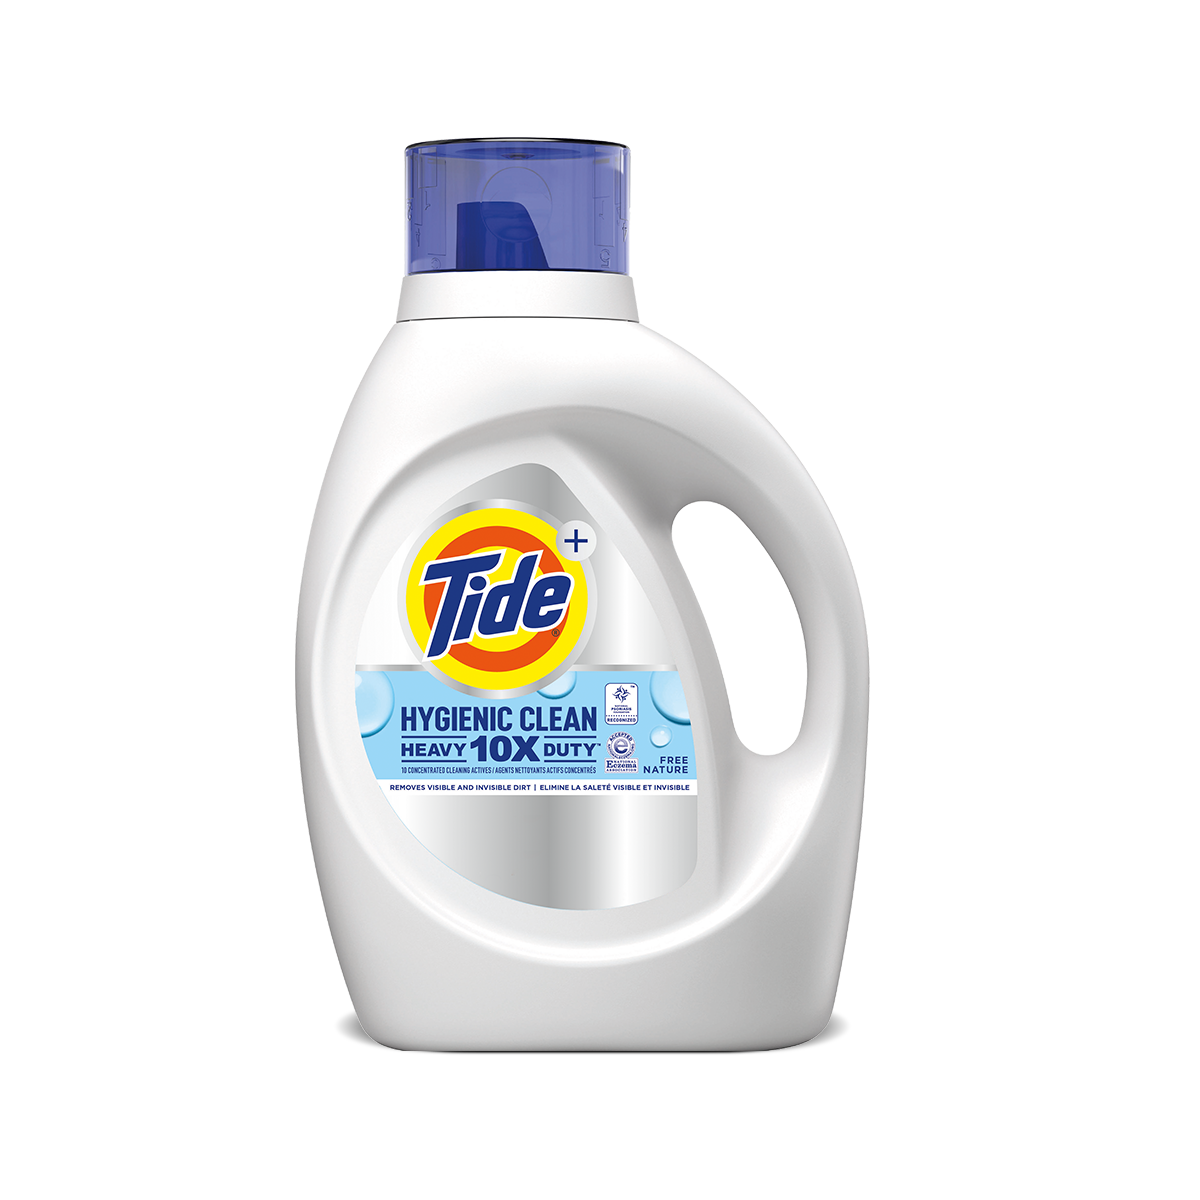 Tide Hygienic Clean Heavy Duty 10X Free Liquid Laundry Detergent